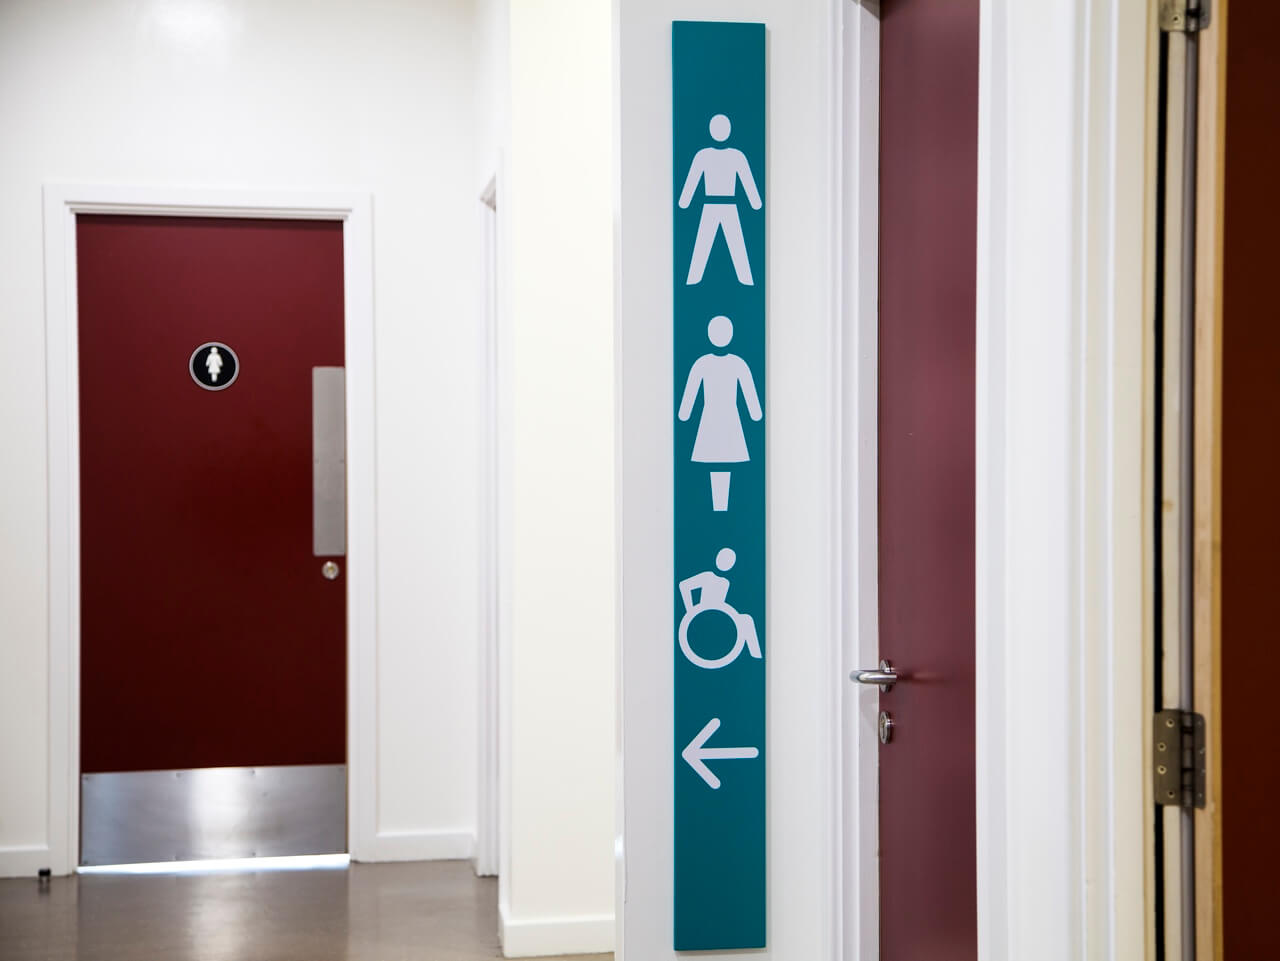 Toilet sign pictograms